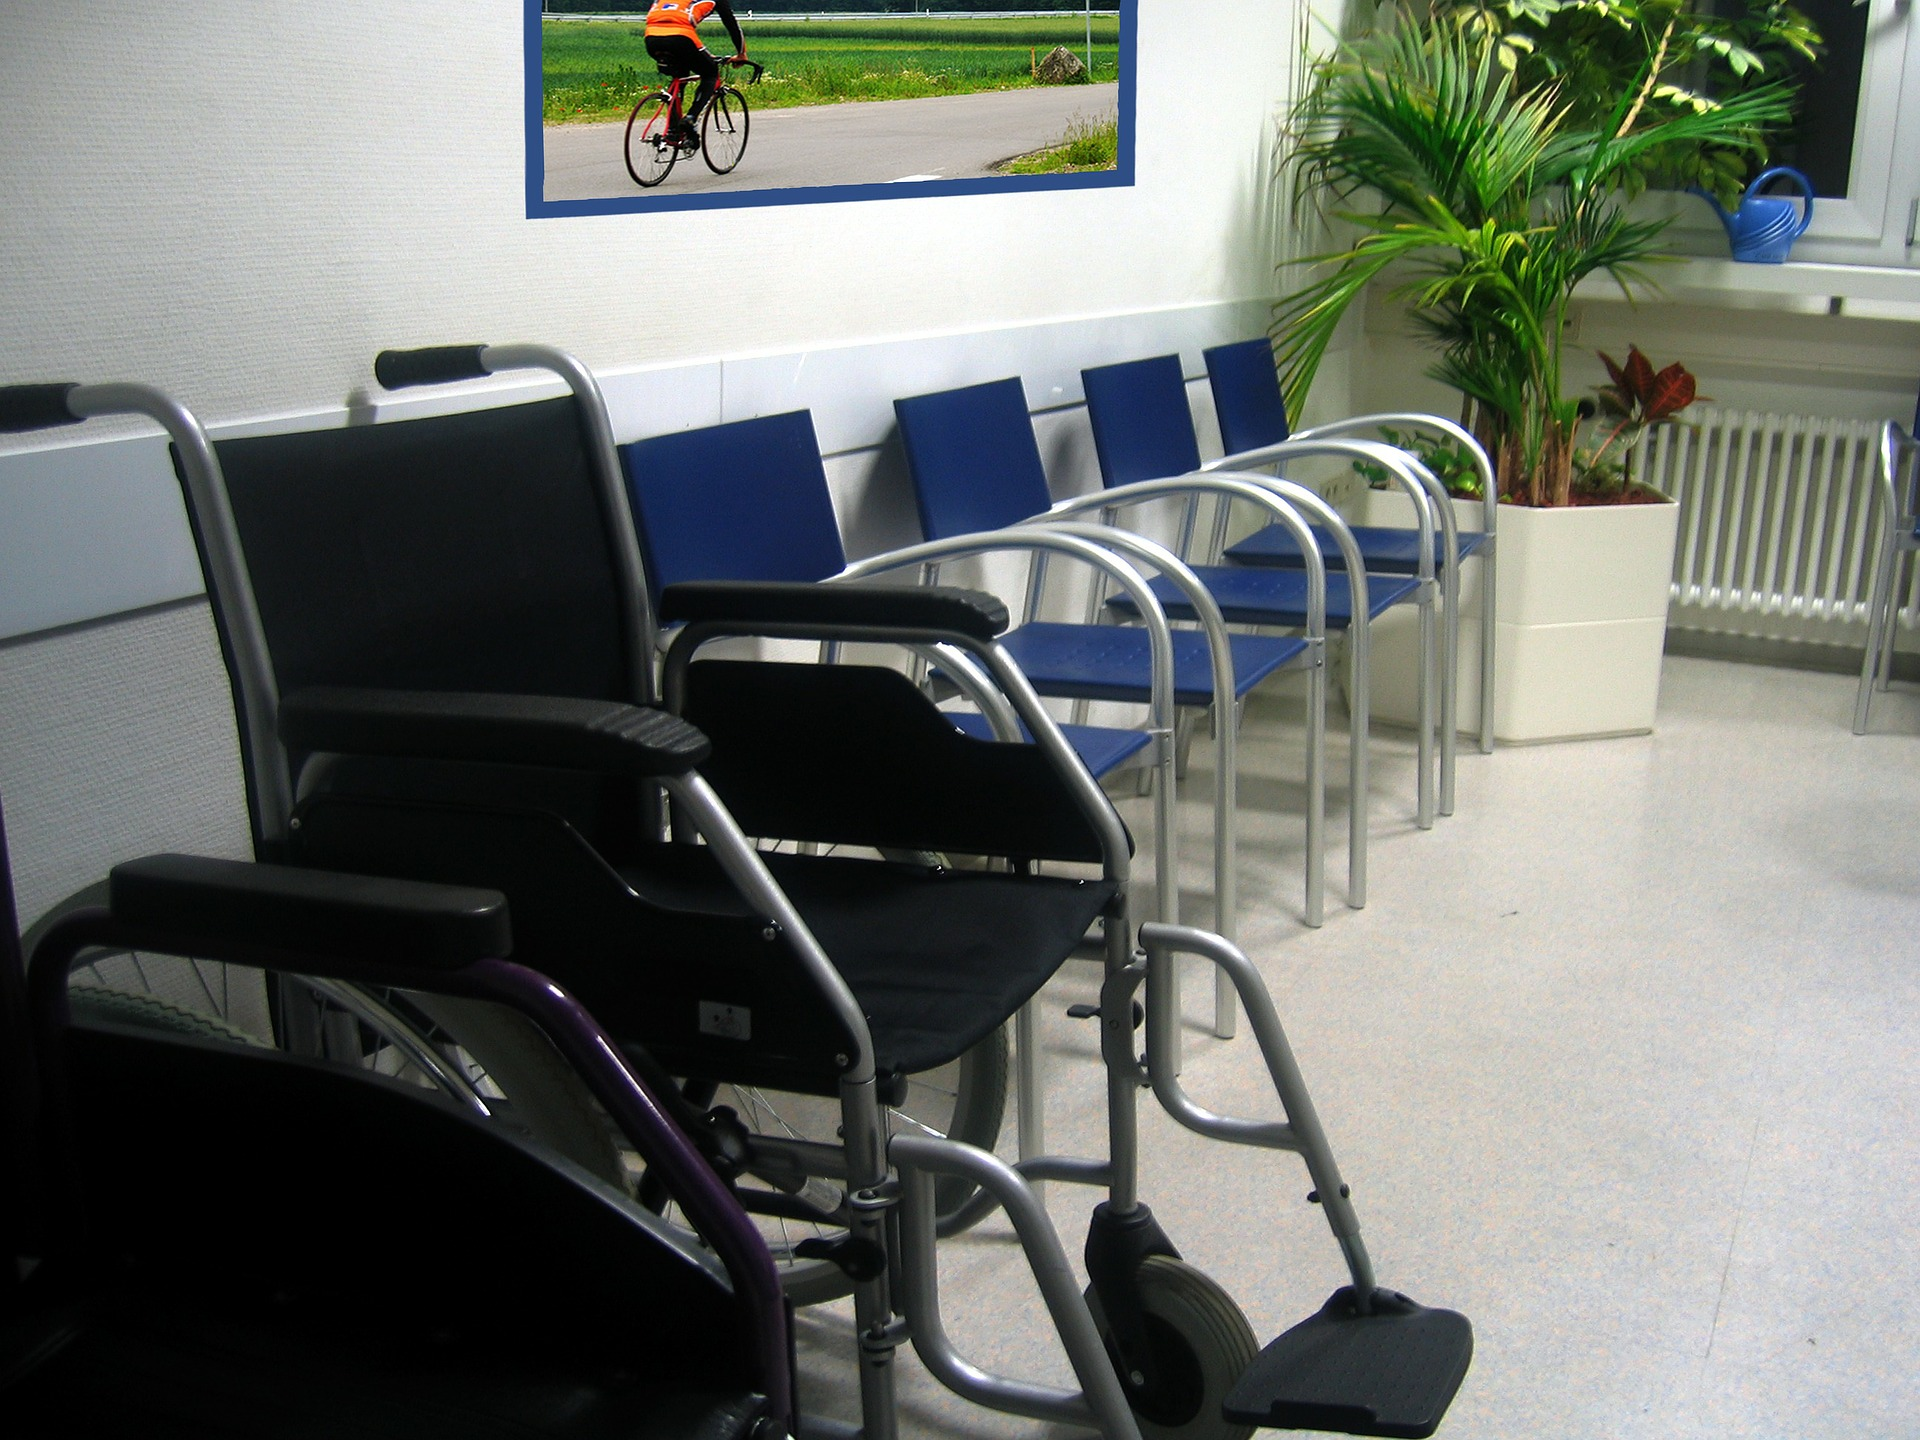 La paura come handicap permanente